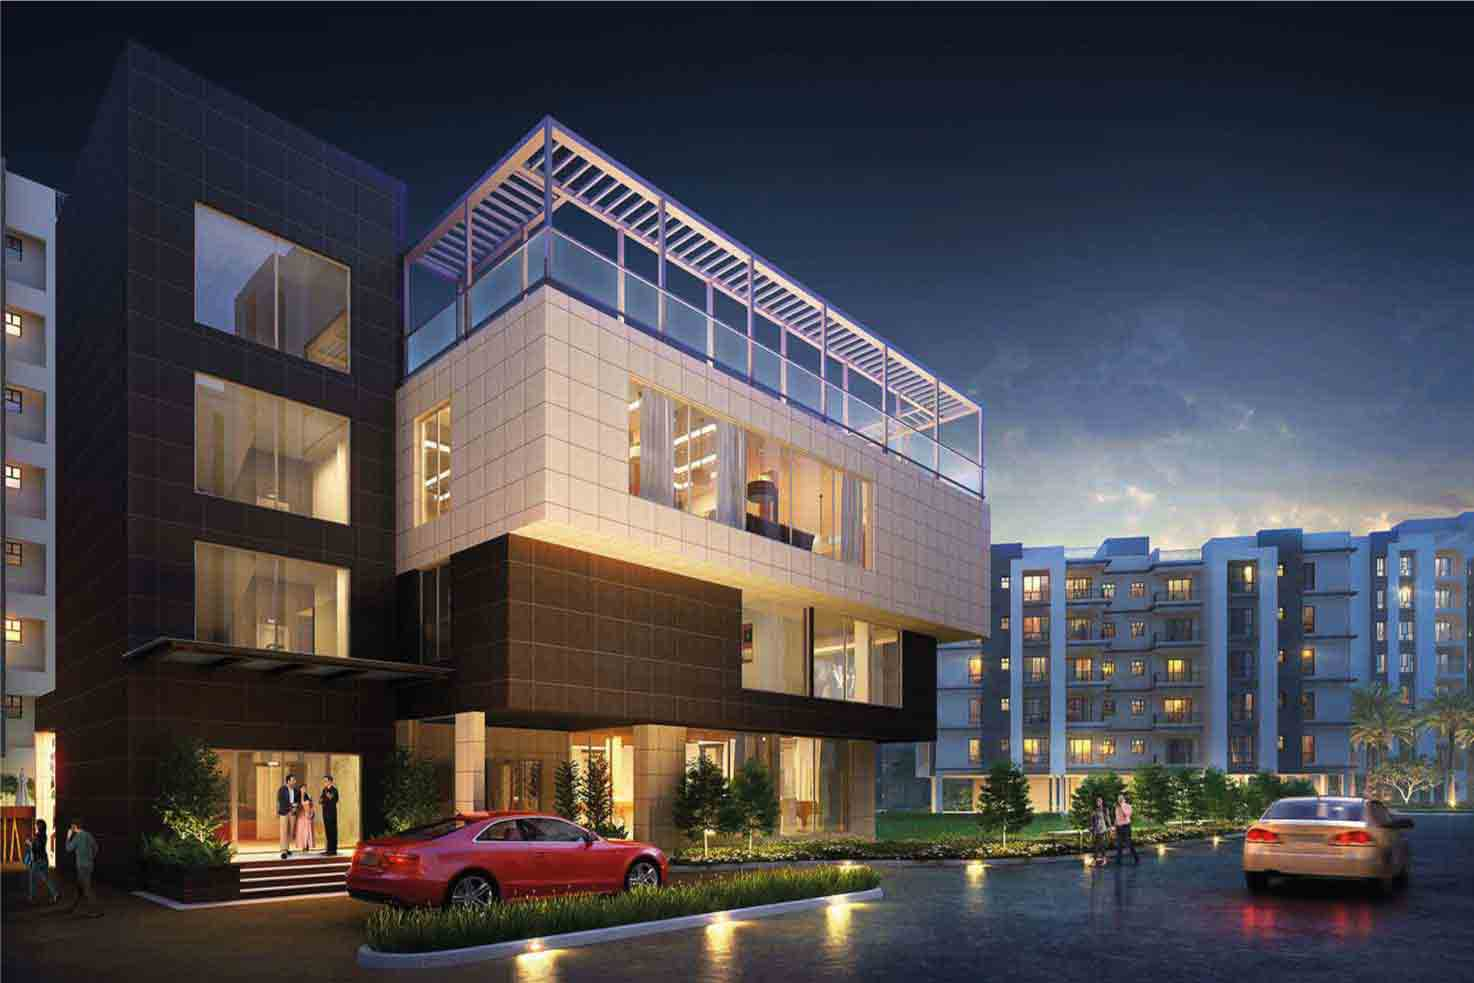 3 BHK Flats in Madhyamgram